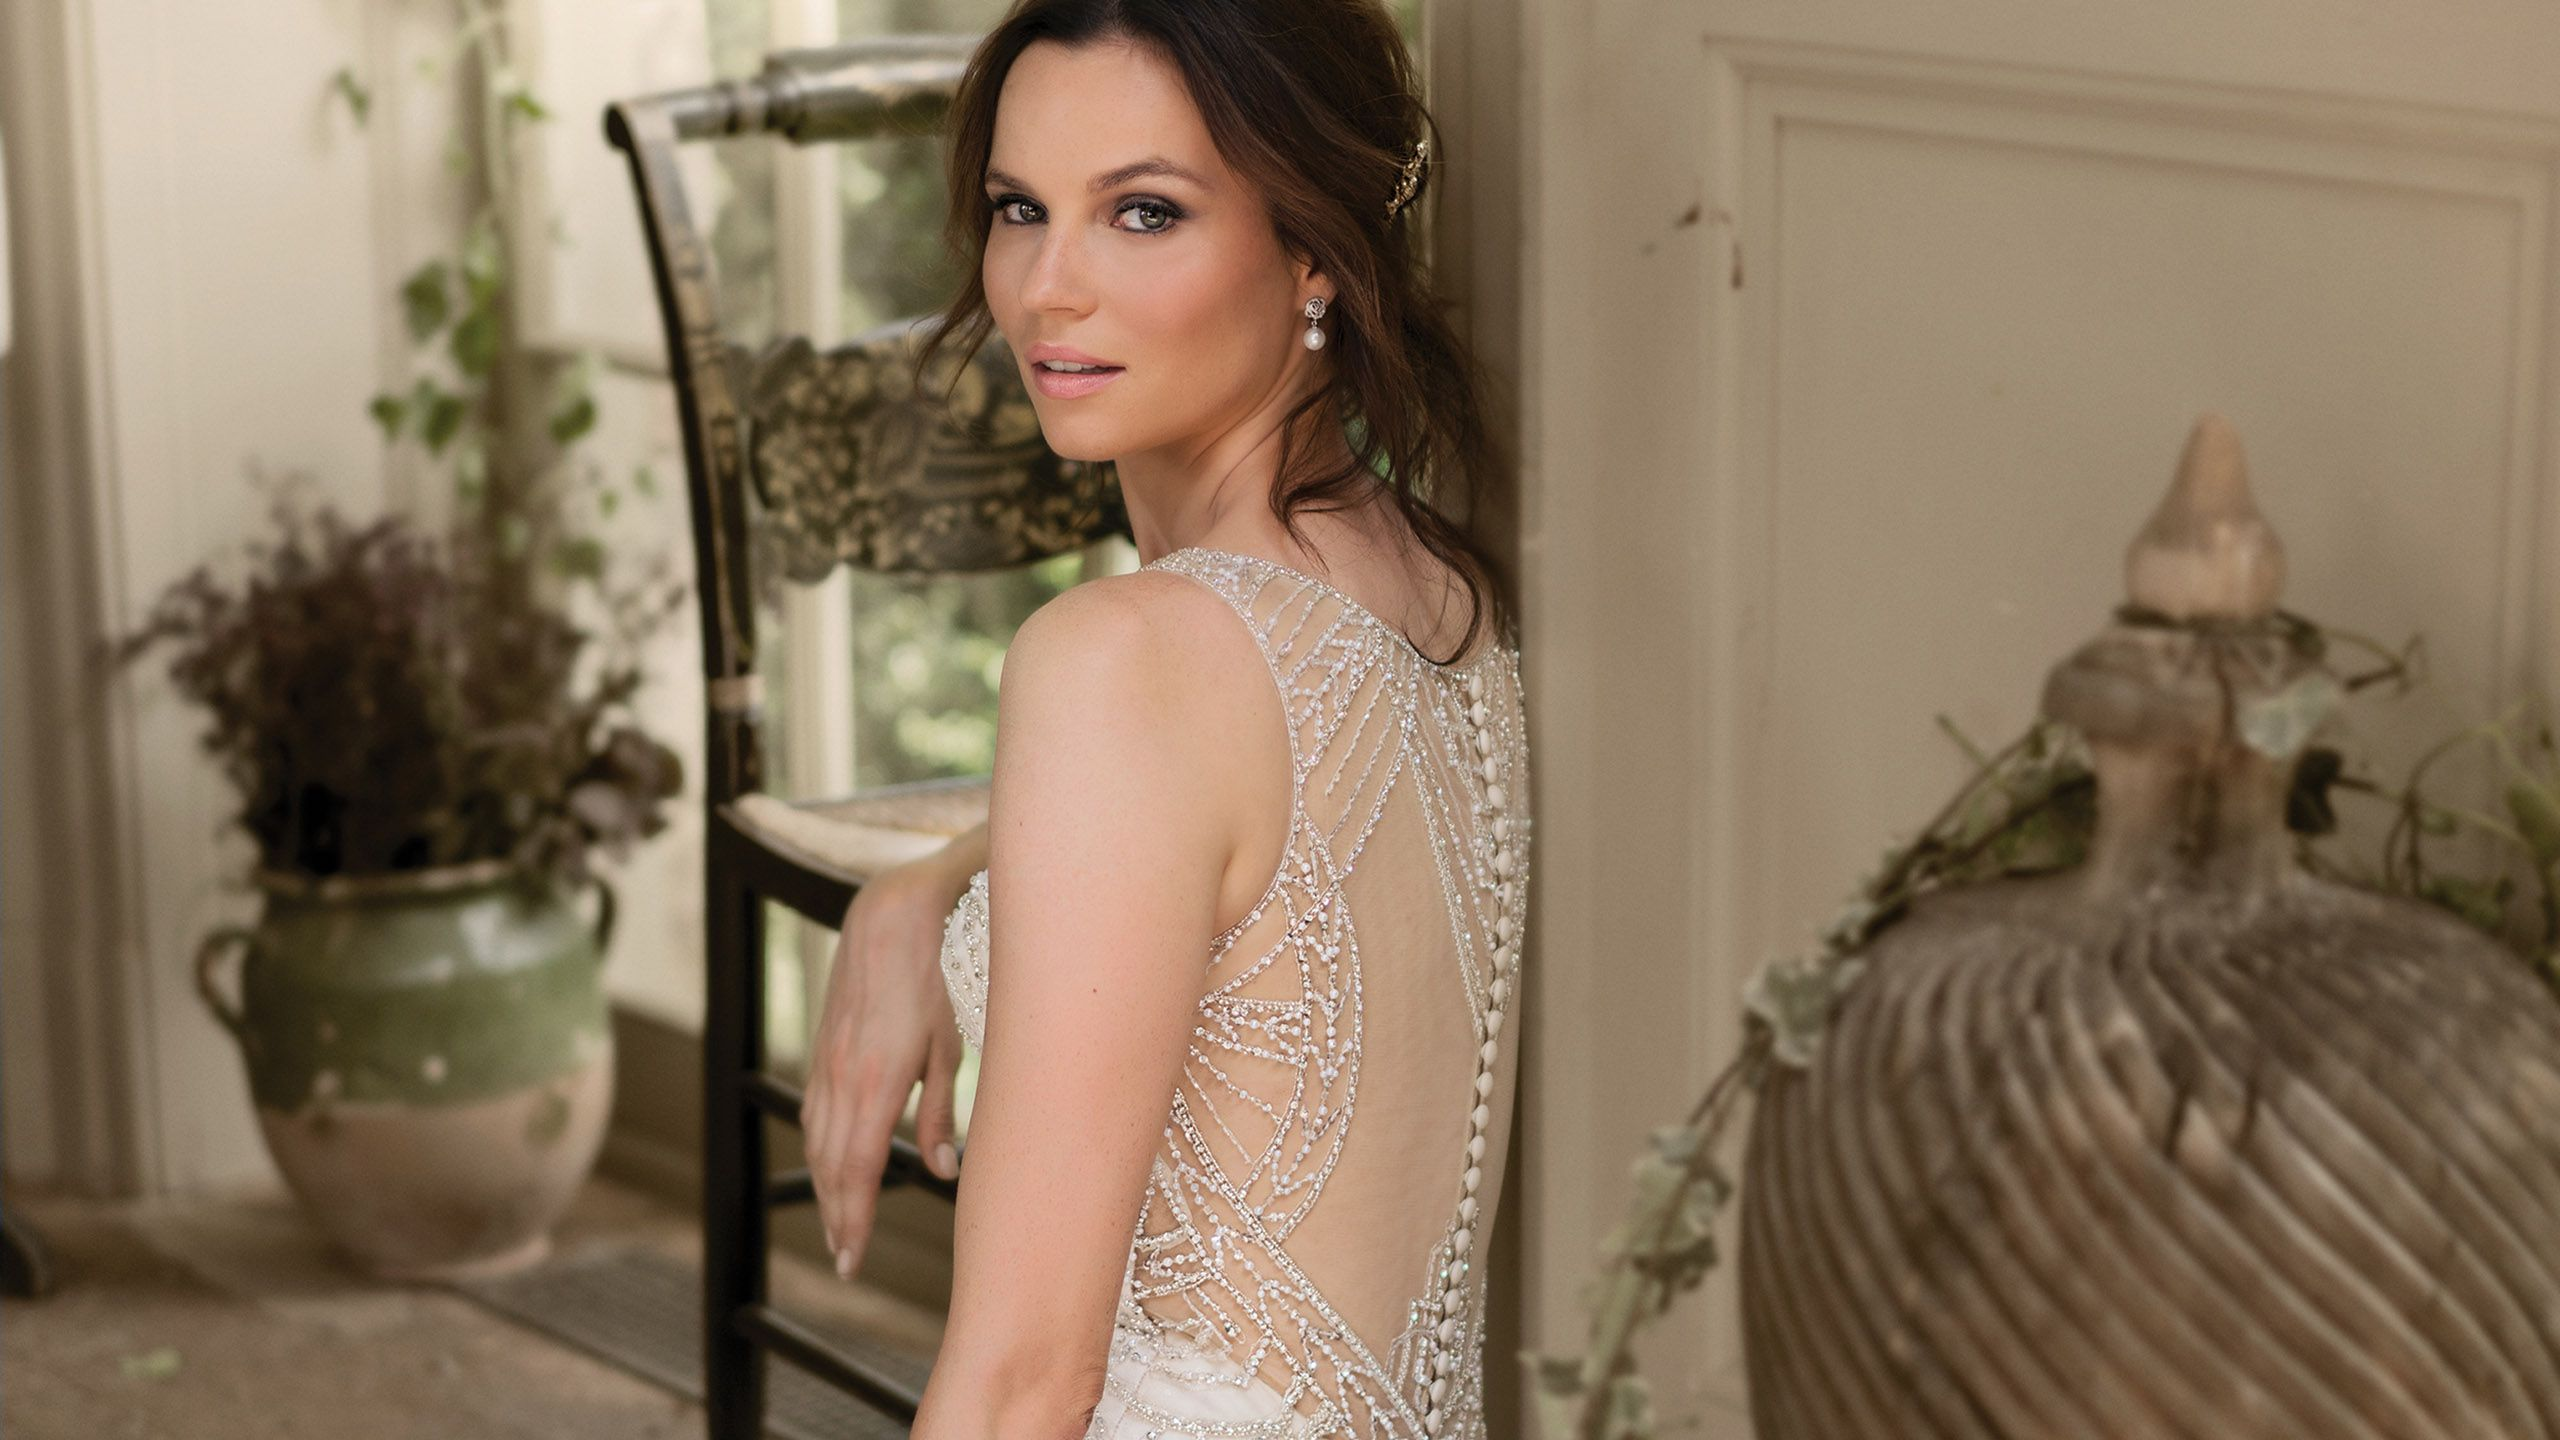 - Style 9897: Art Deco Beaded Mermaid Gown with Illusion Back